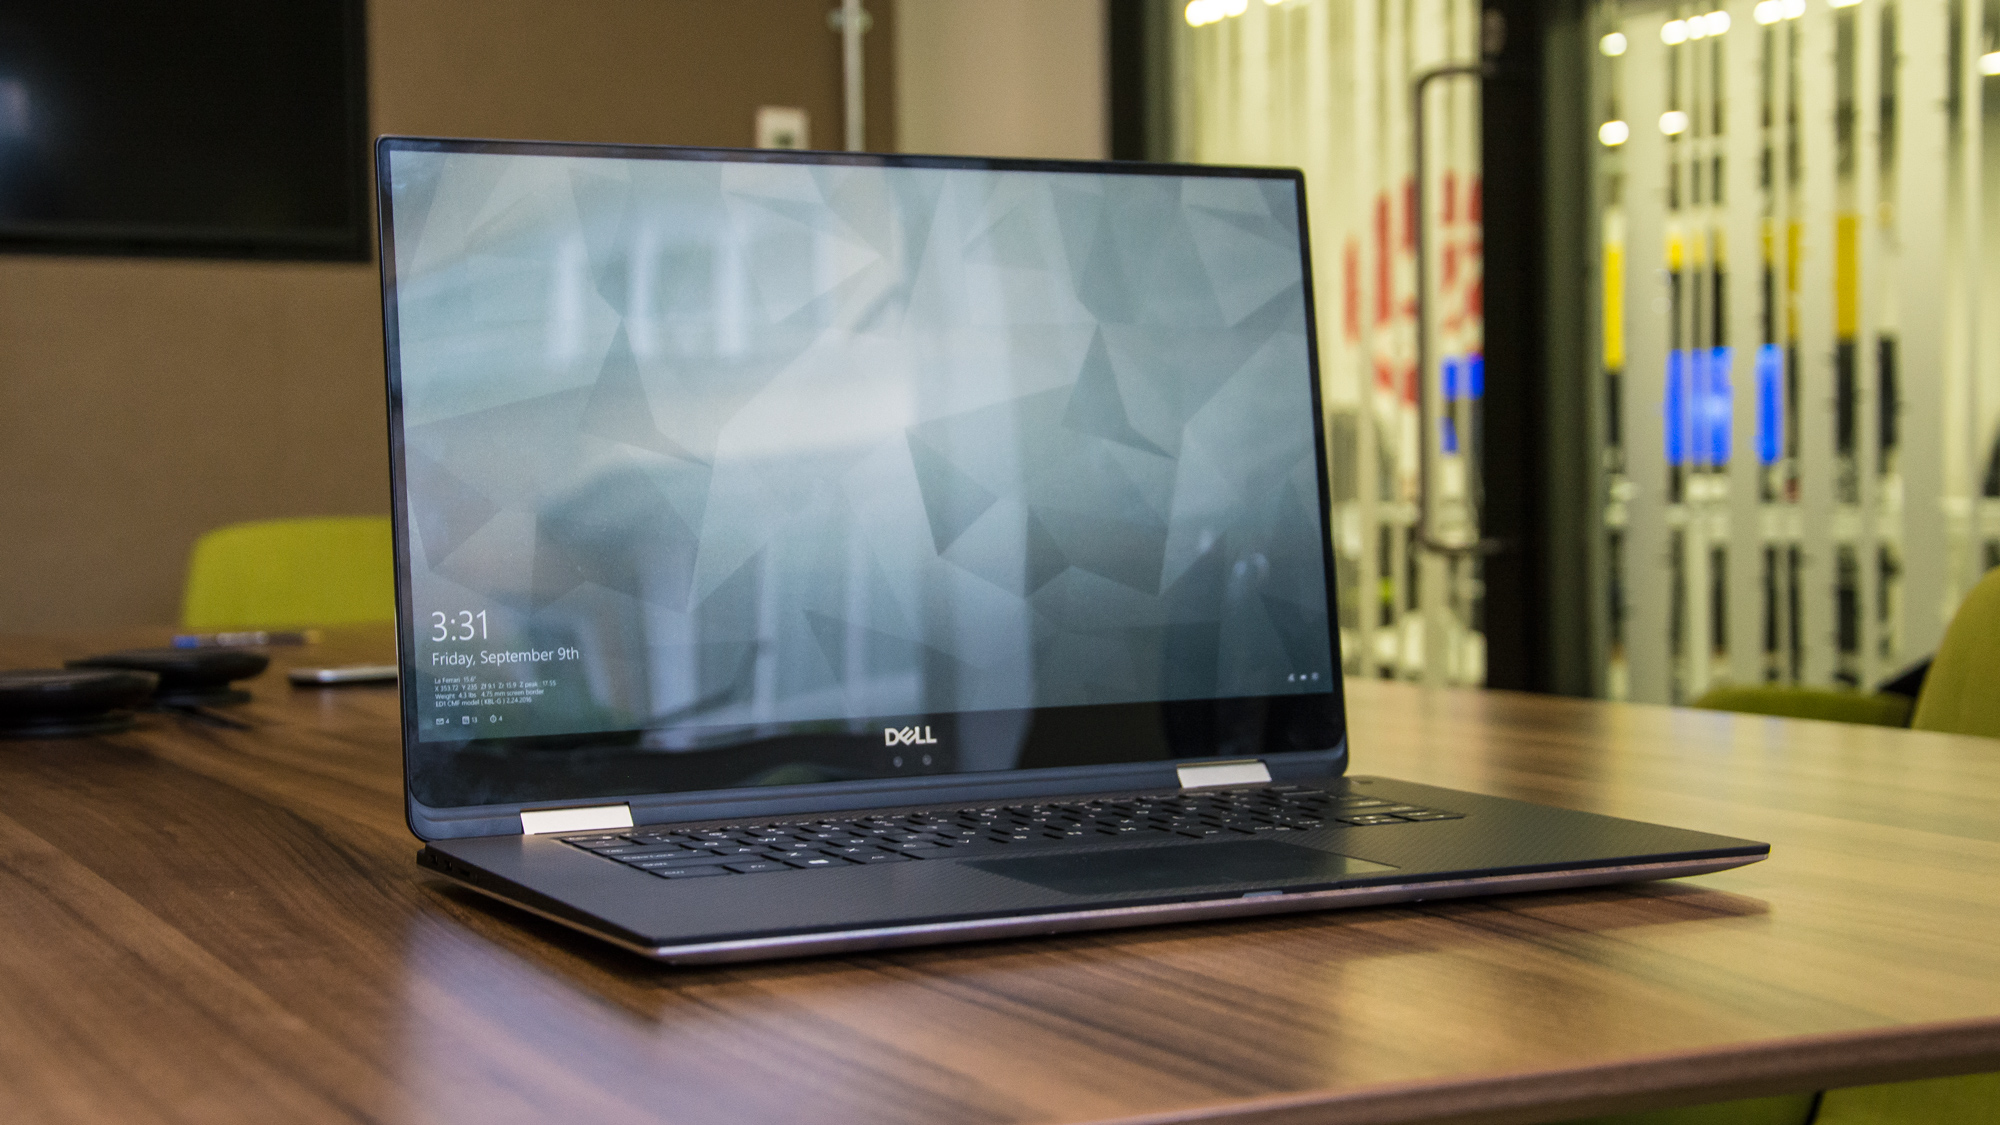 The 2 In 1 Variant Of Dells XPS 13 Was Somewhat Disappointing Featuring A Decidedly Underwhelming Dual Core Processor Imagine Our Surprise Then